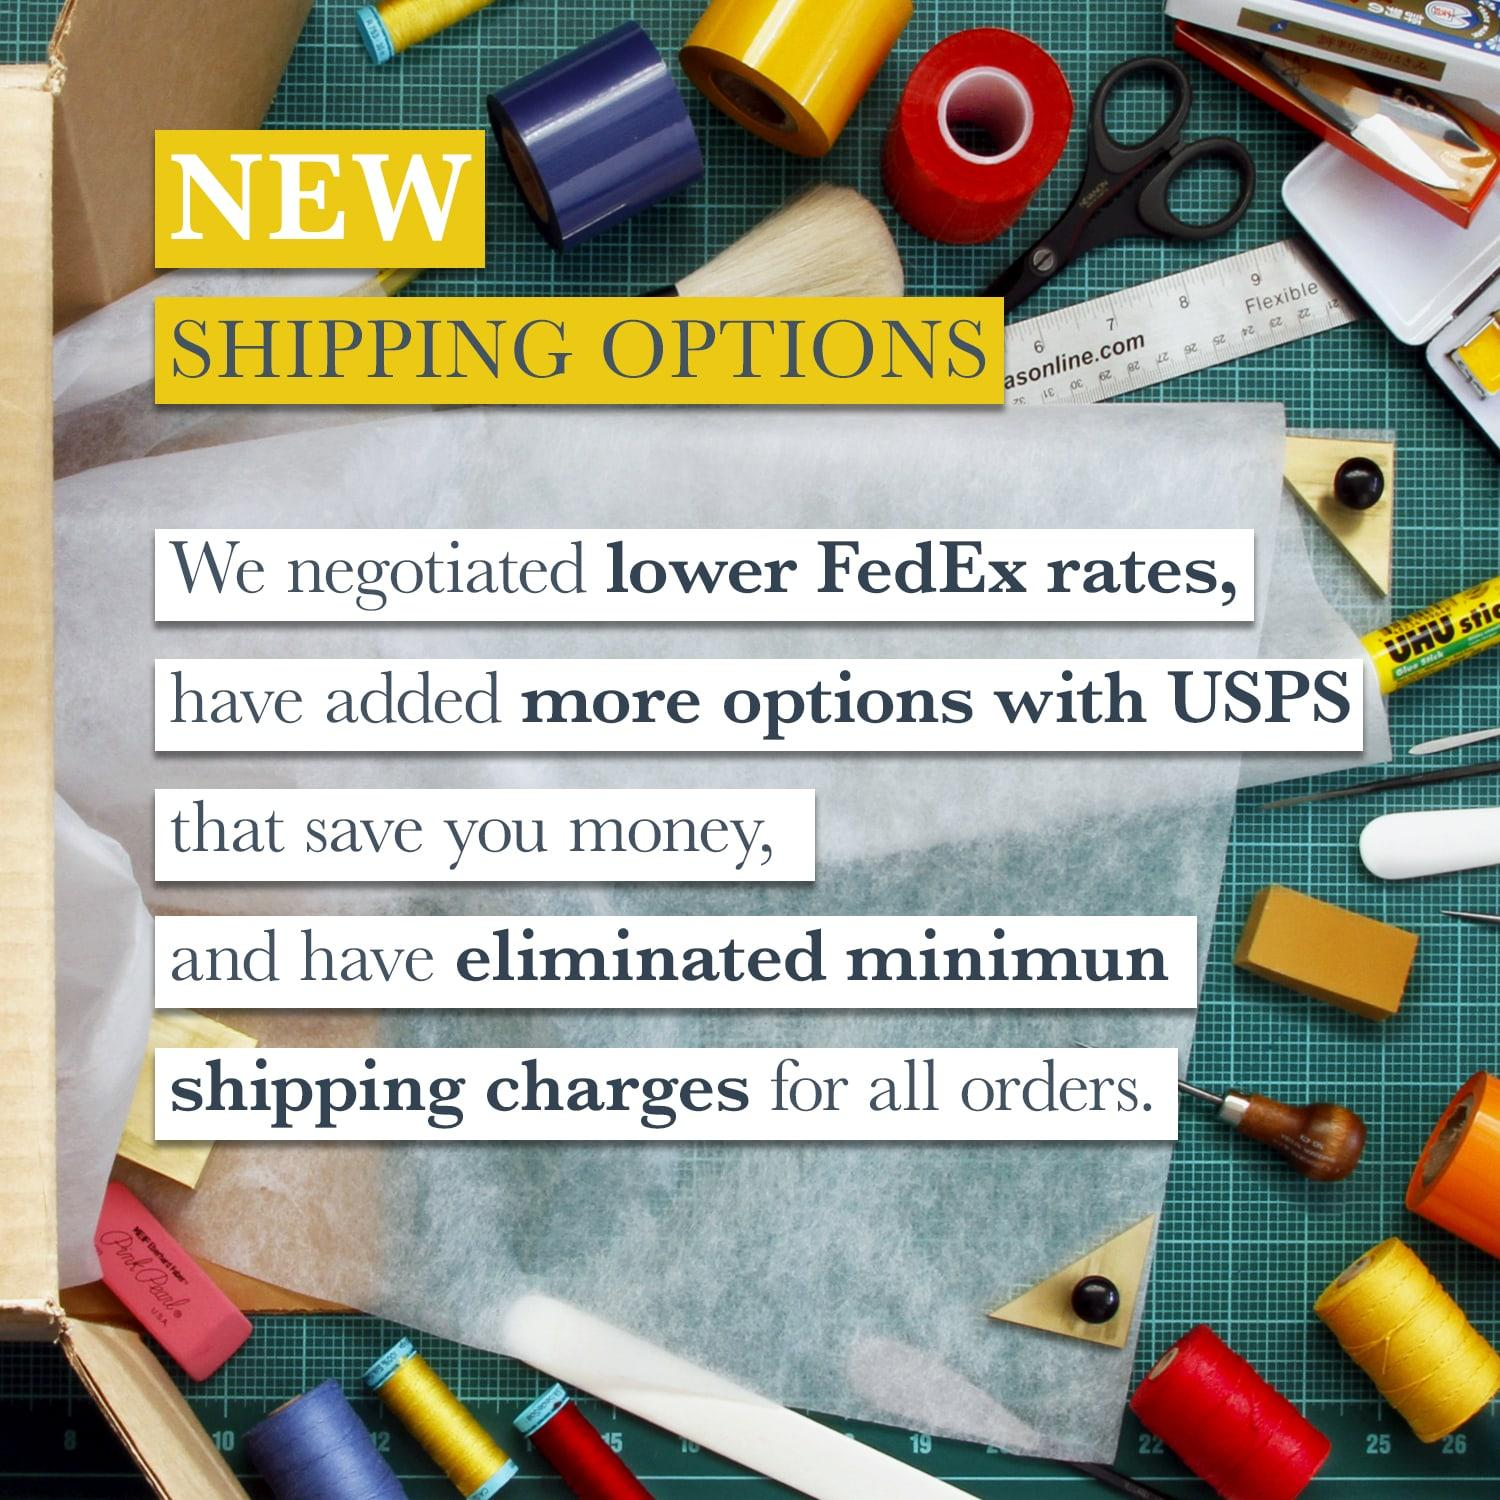 New Shipping Options and Rates!